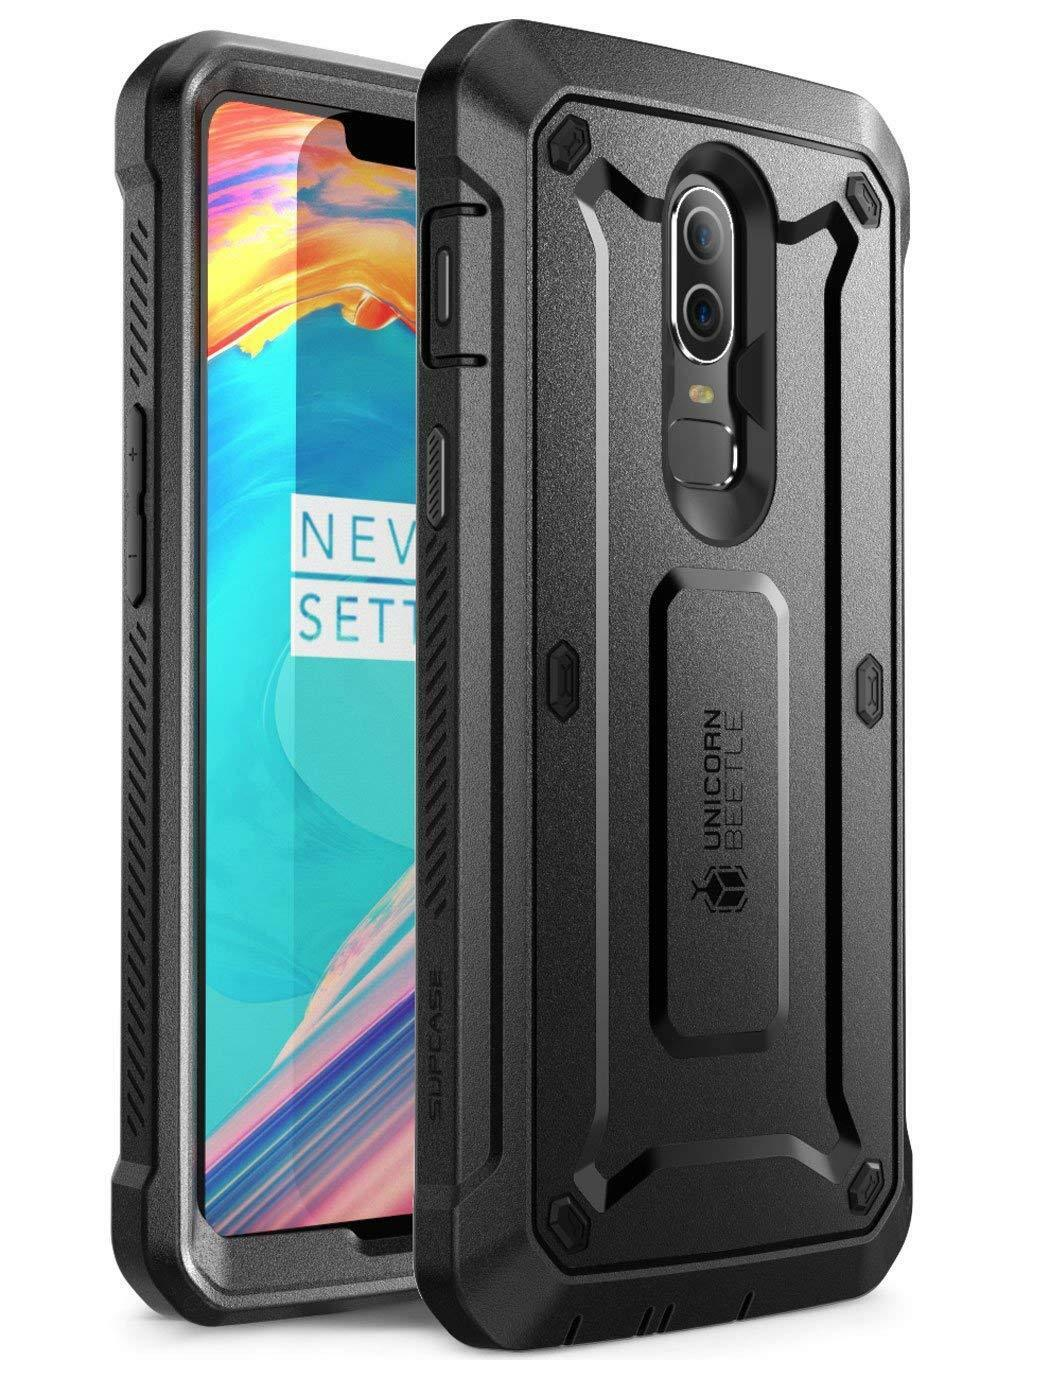 Cell Phone Accessories Dedicated Supcase Oneplus 6 Case Full-body Rugged Drop-proof Case Cases, Covers & Skins